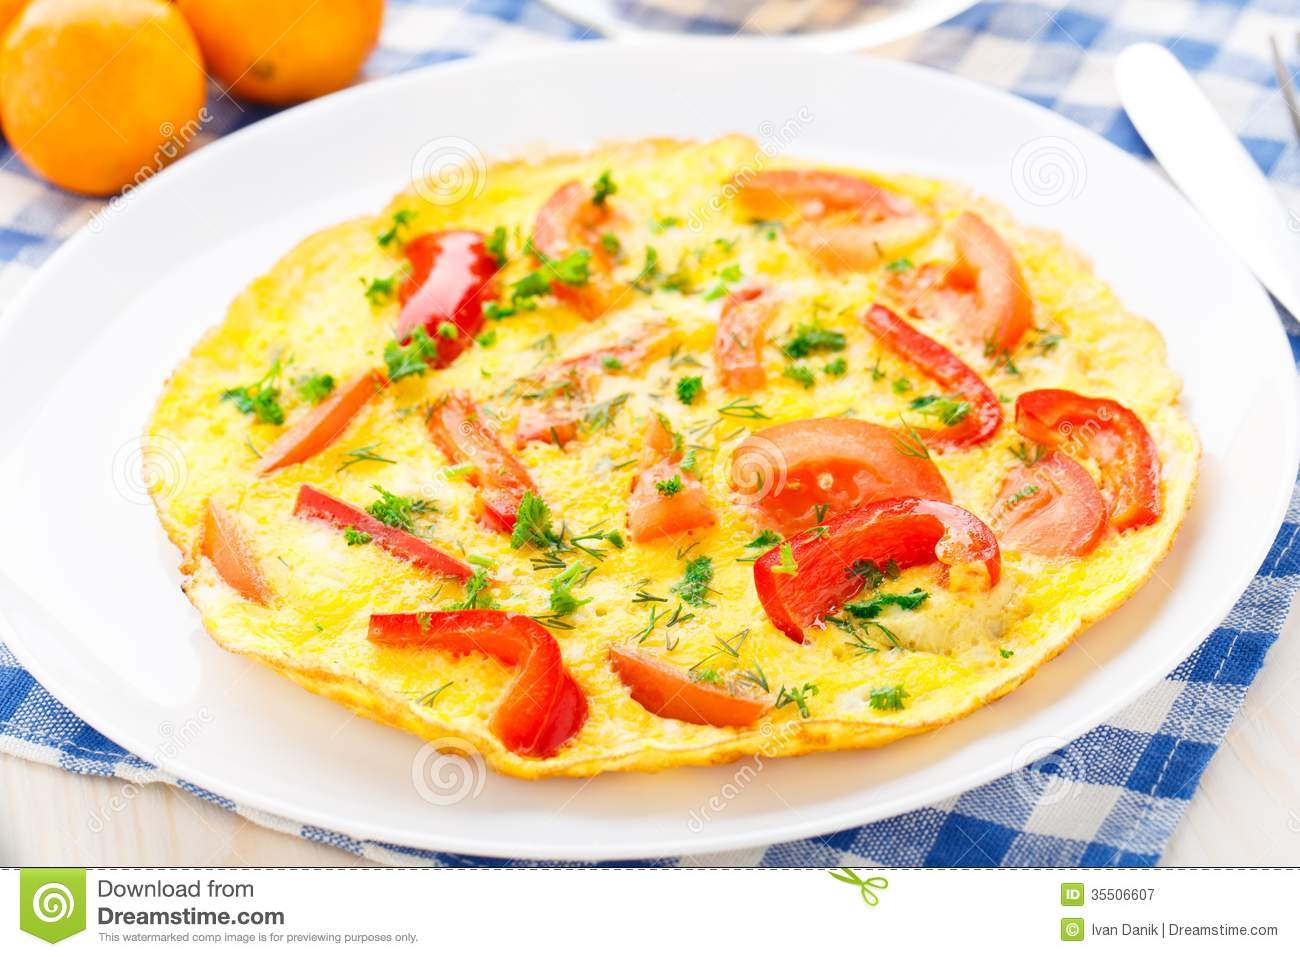 Omelet With Paprika, Tomato And Herbs Stock Image - Image ...